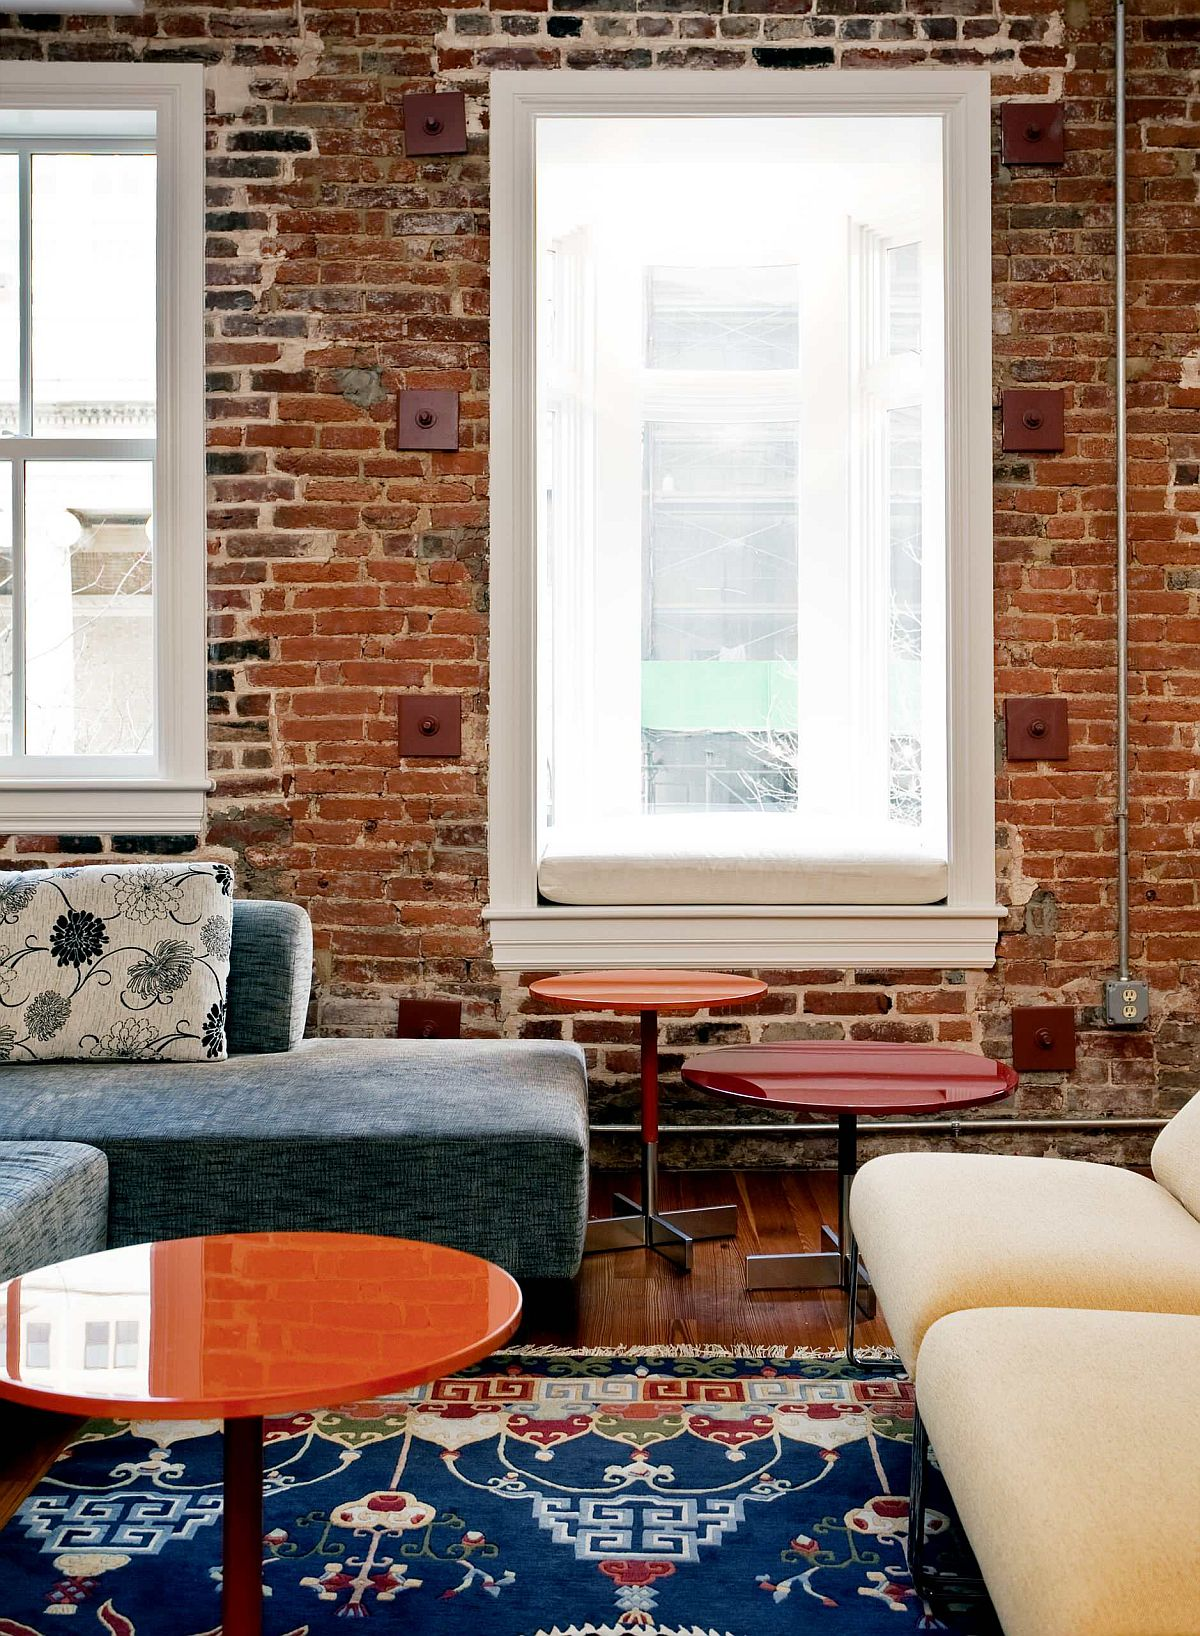 Multi-colored-rug-for-the-brick-wall-eclectic-style-living-room-with-comfy-decor